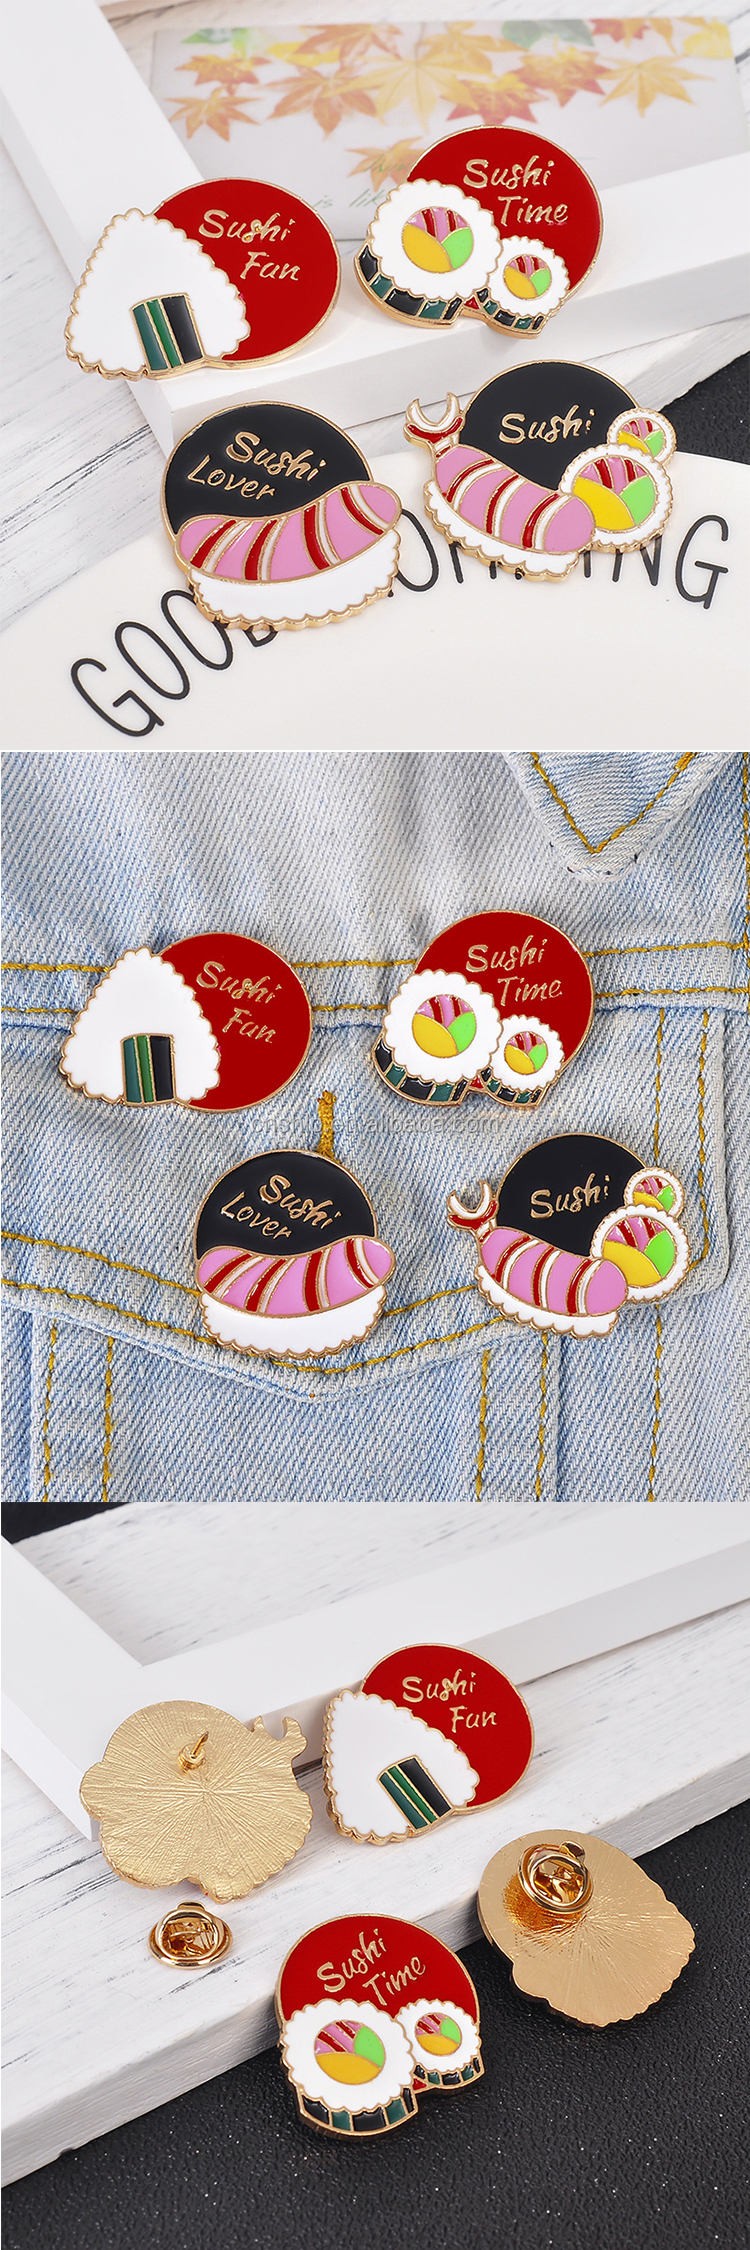 Cheap custom funny soft enamel lapel pins with butterfly clasp